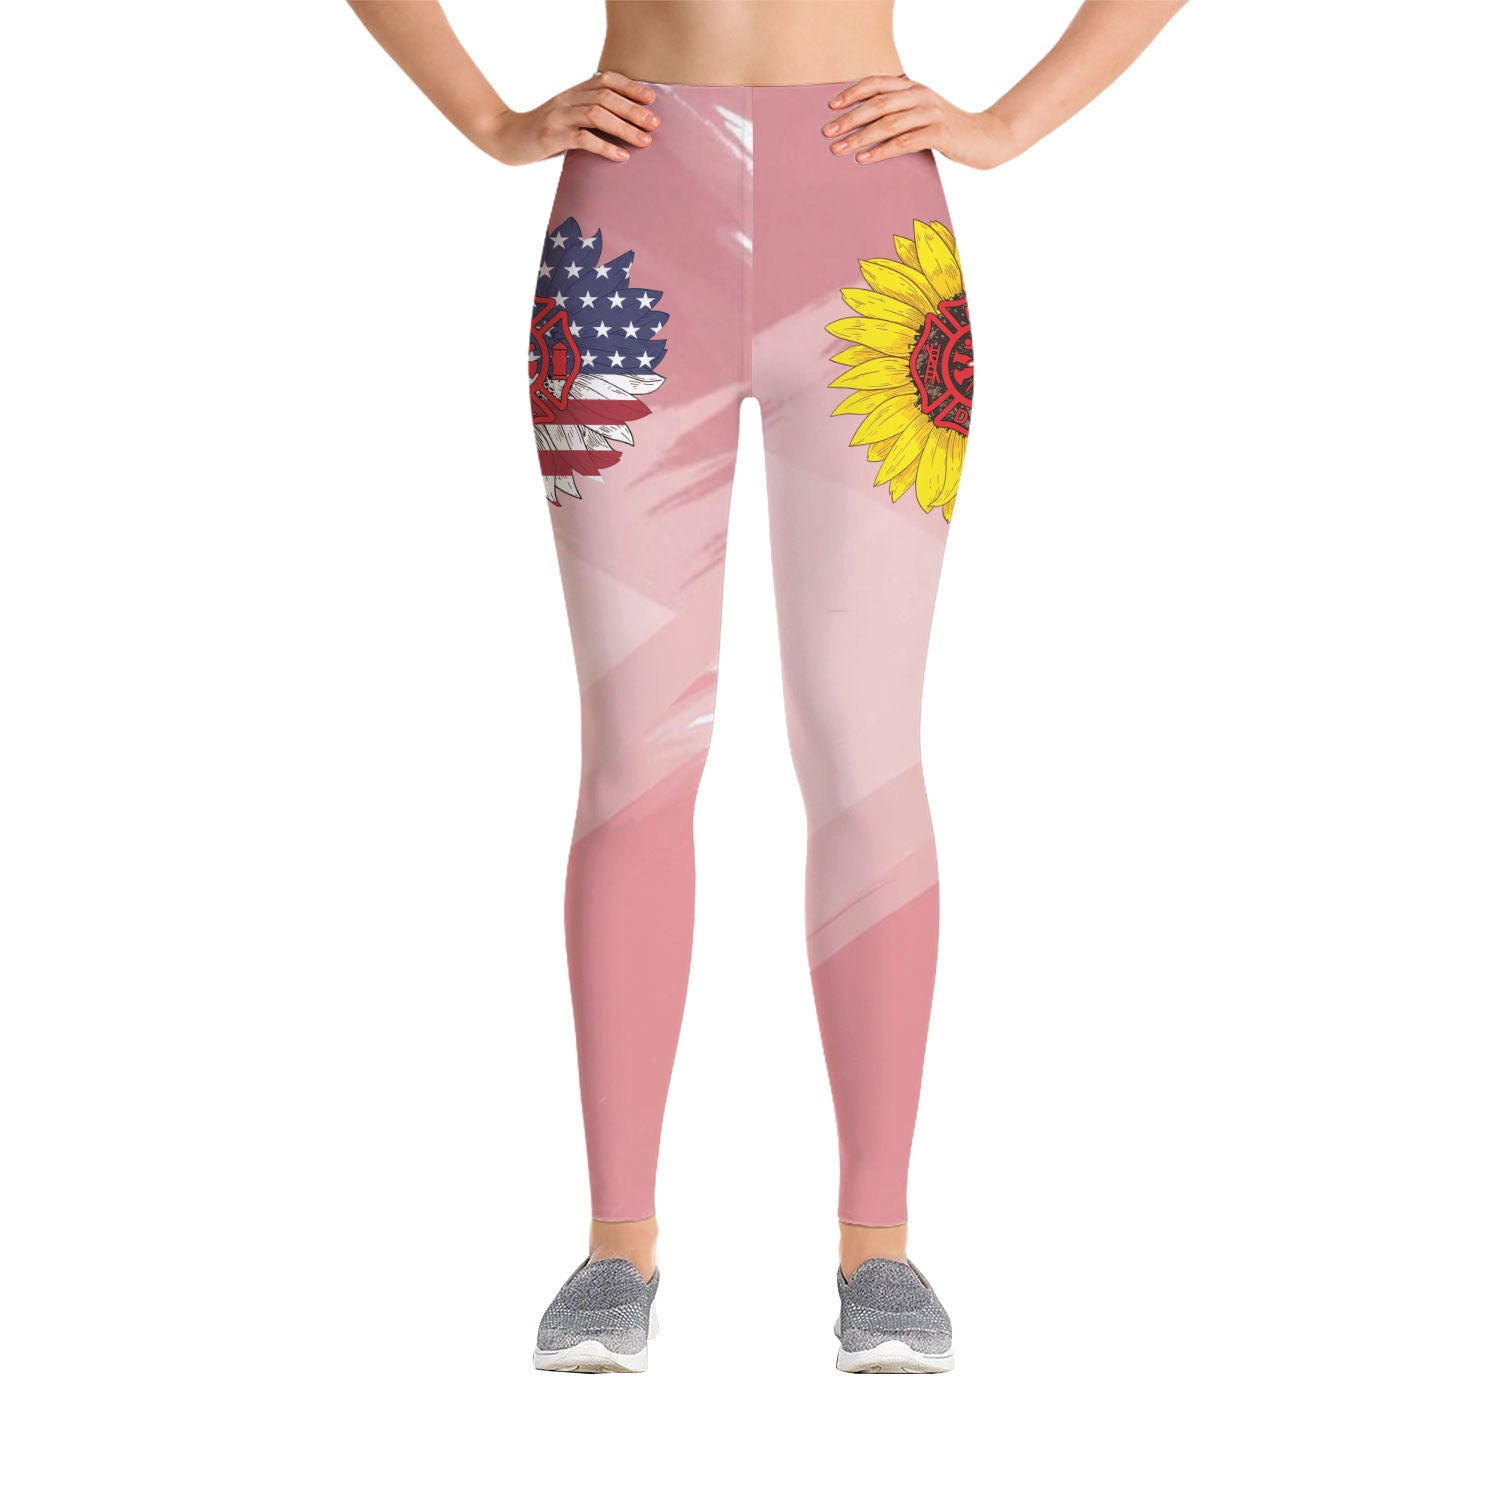 VIRA PREMIUM LEGGING FOR WHO LOVES AMERICA AND FIREFIGHTER TOO